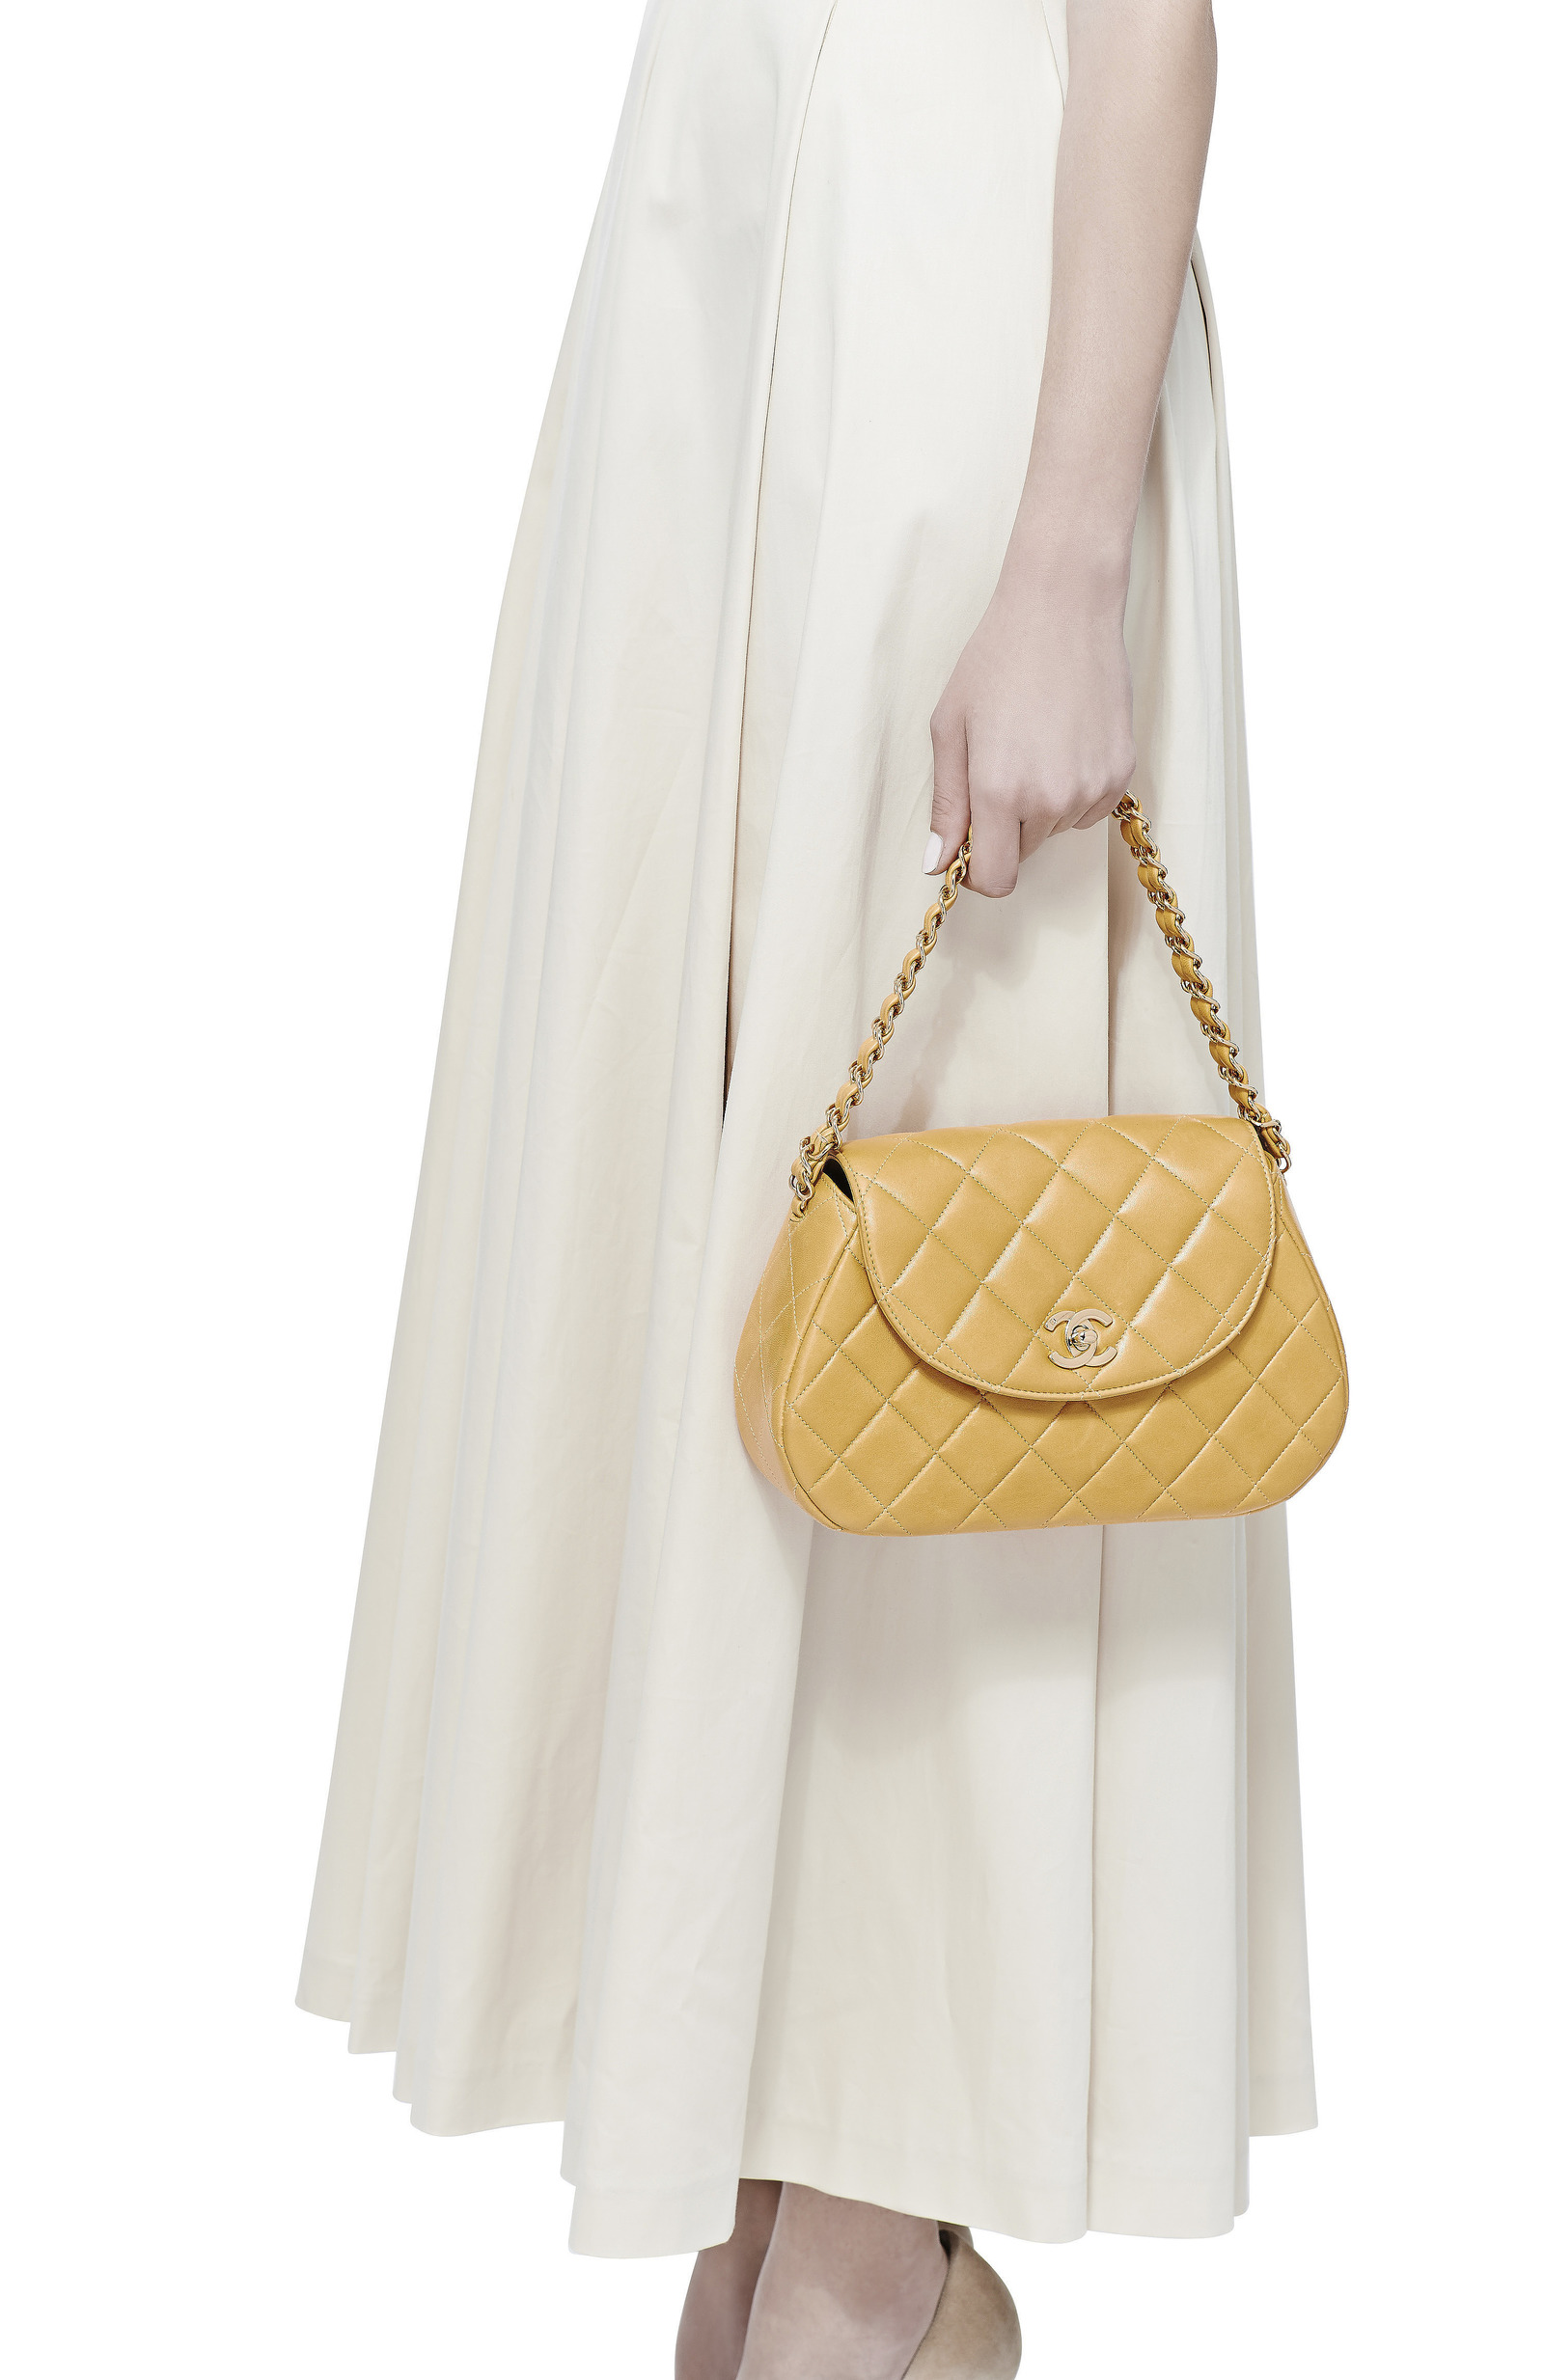 6032b1caf5b8 Collectible JacketsVintage Chanel Yellow Quilted Round Flap Bag. CLOSE.  Loading. Loading. Loading. Loading